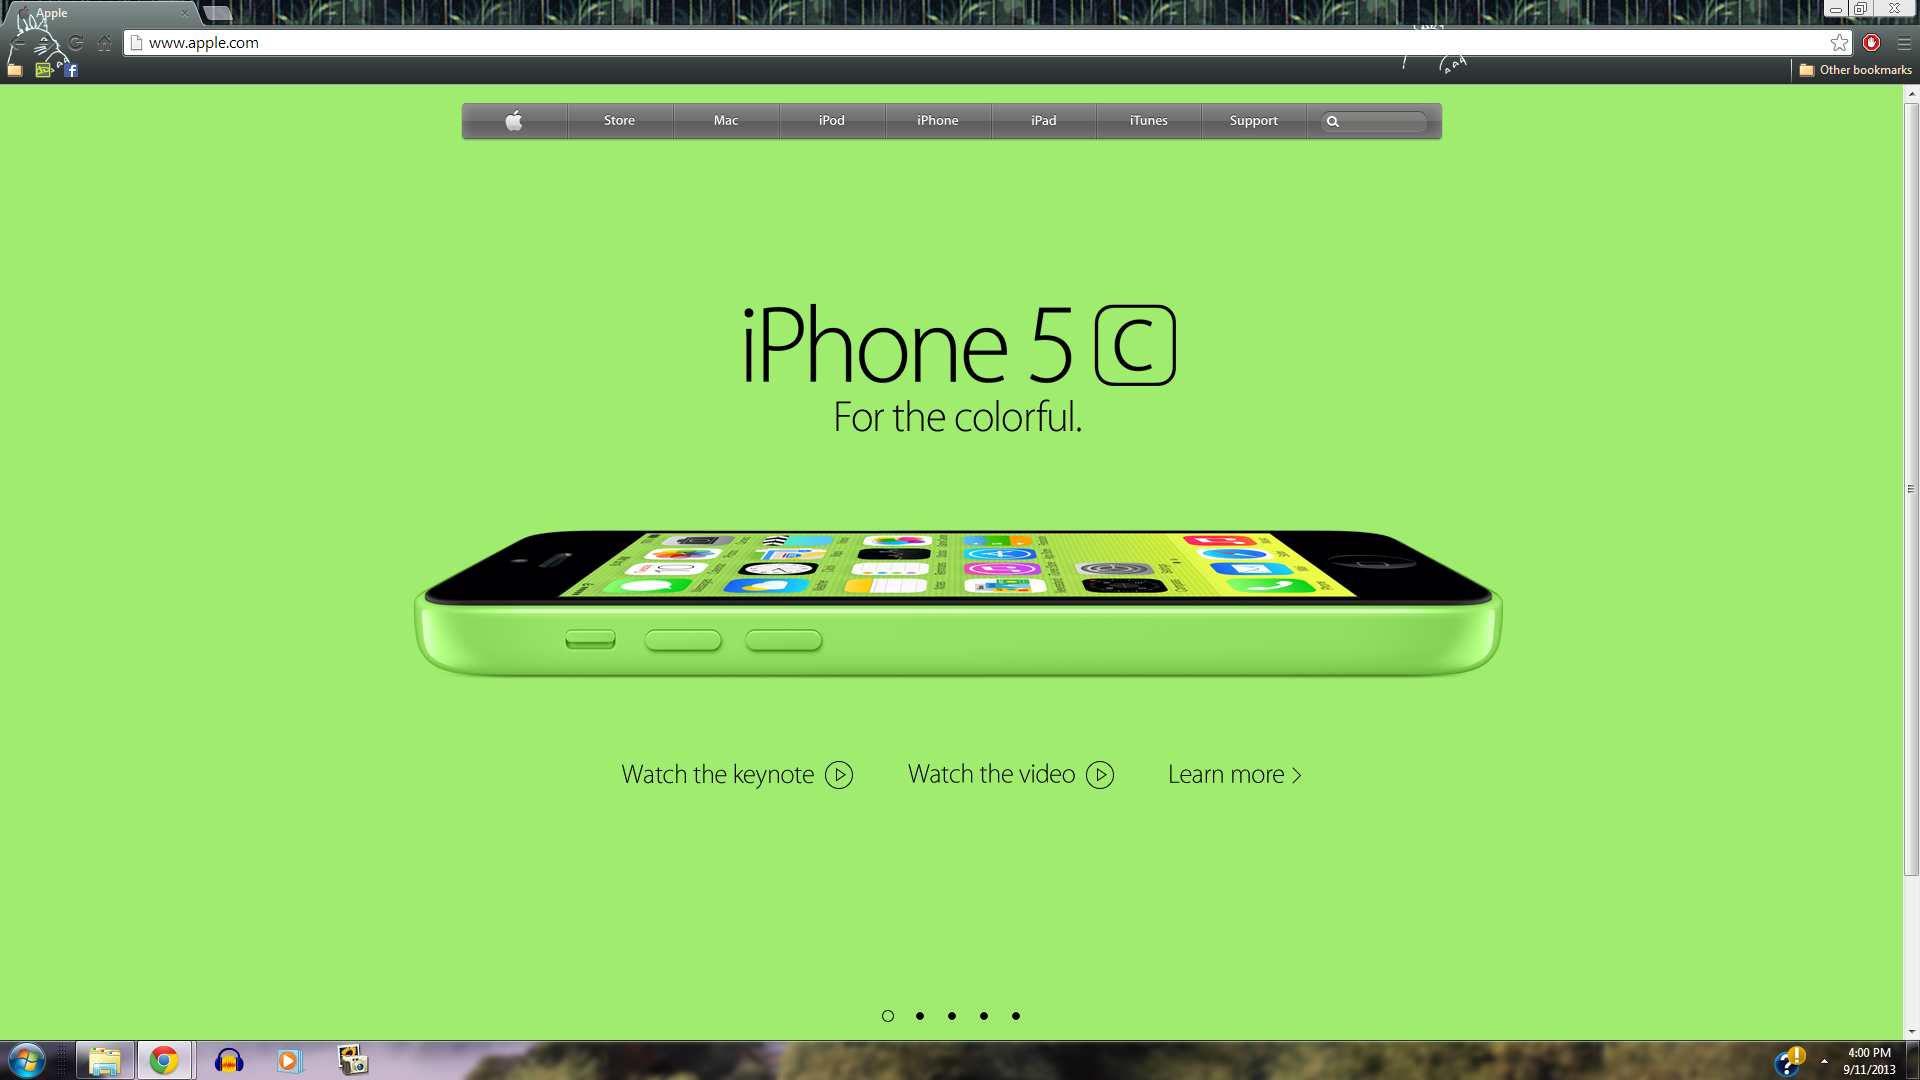 iPhone 5c Green manzana, apple Homepage